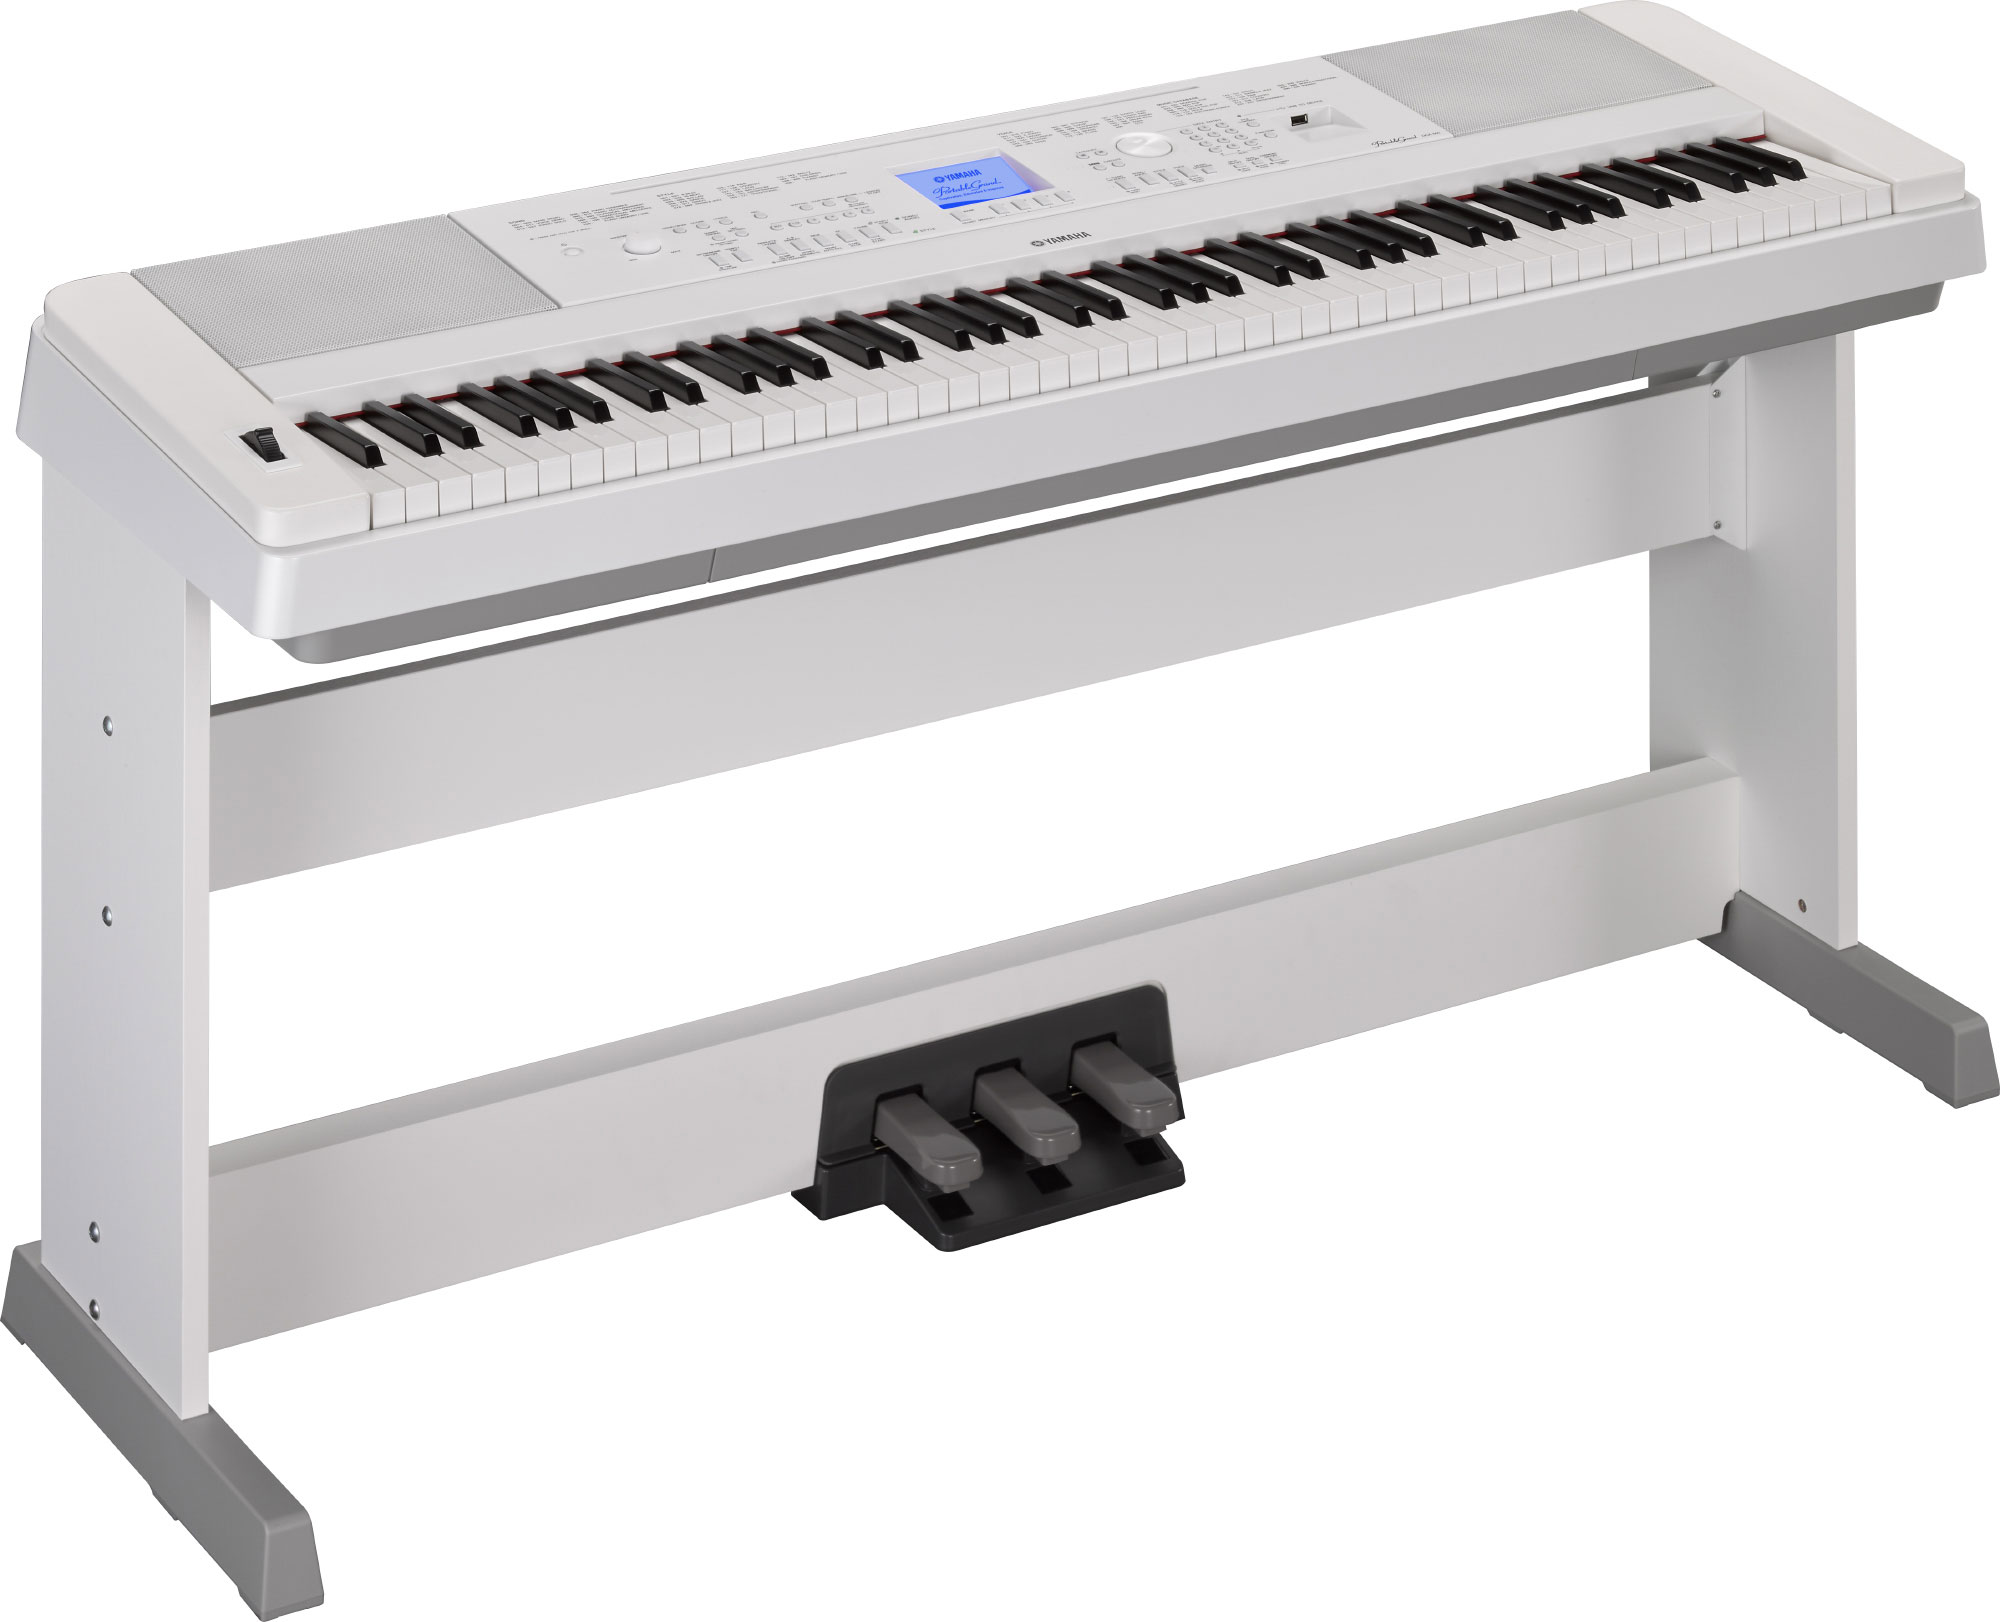 Dgx 660 absolute pianoabsolute piano for Yamaha digital piano philippines